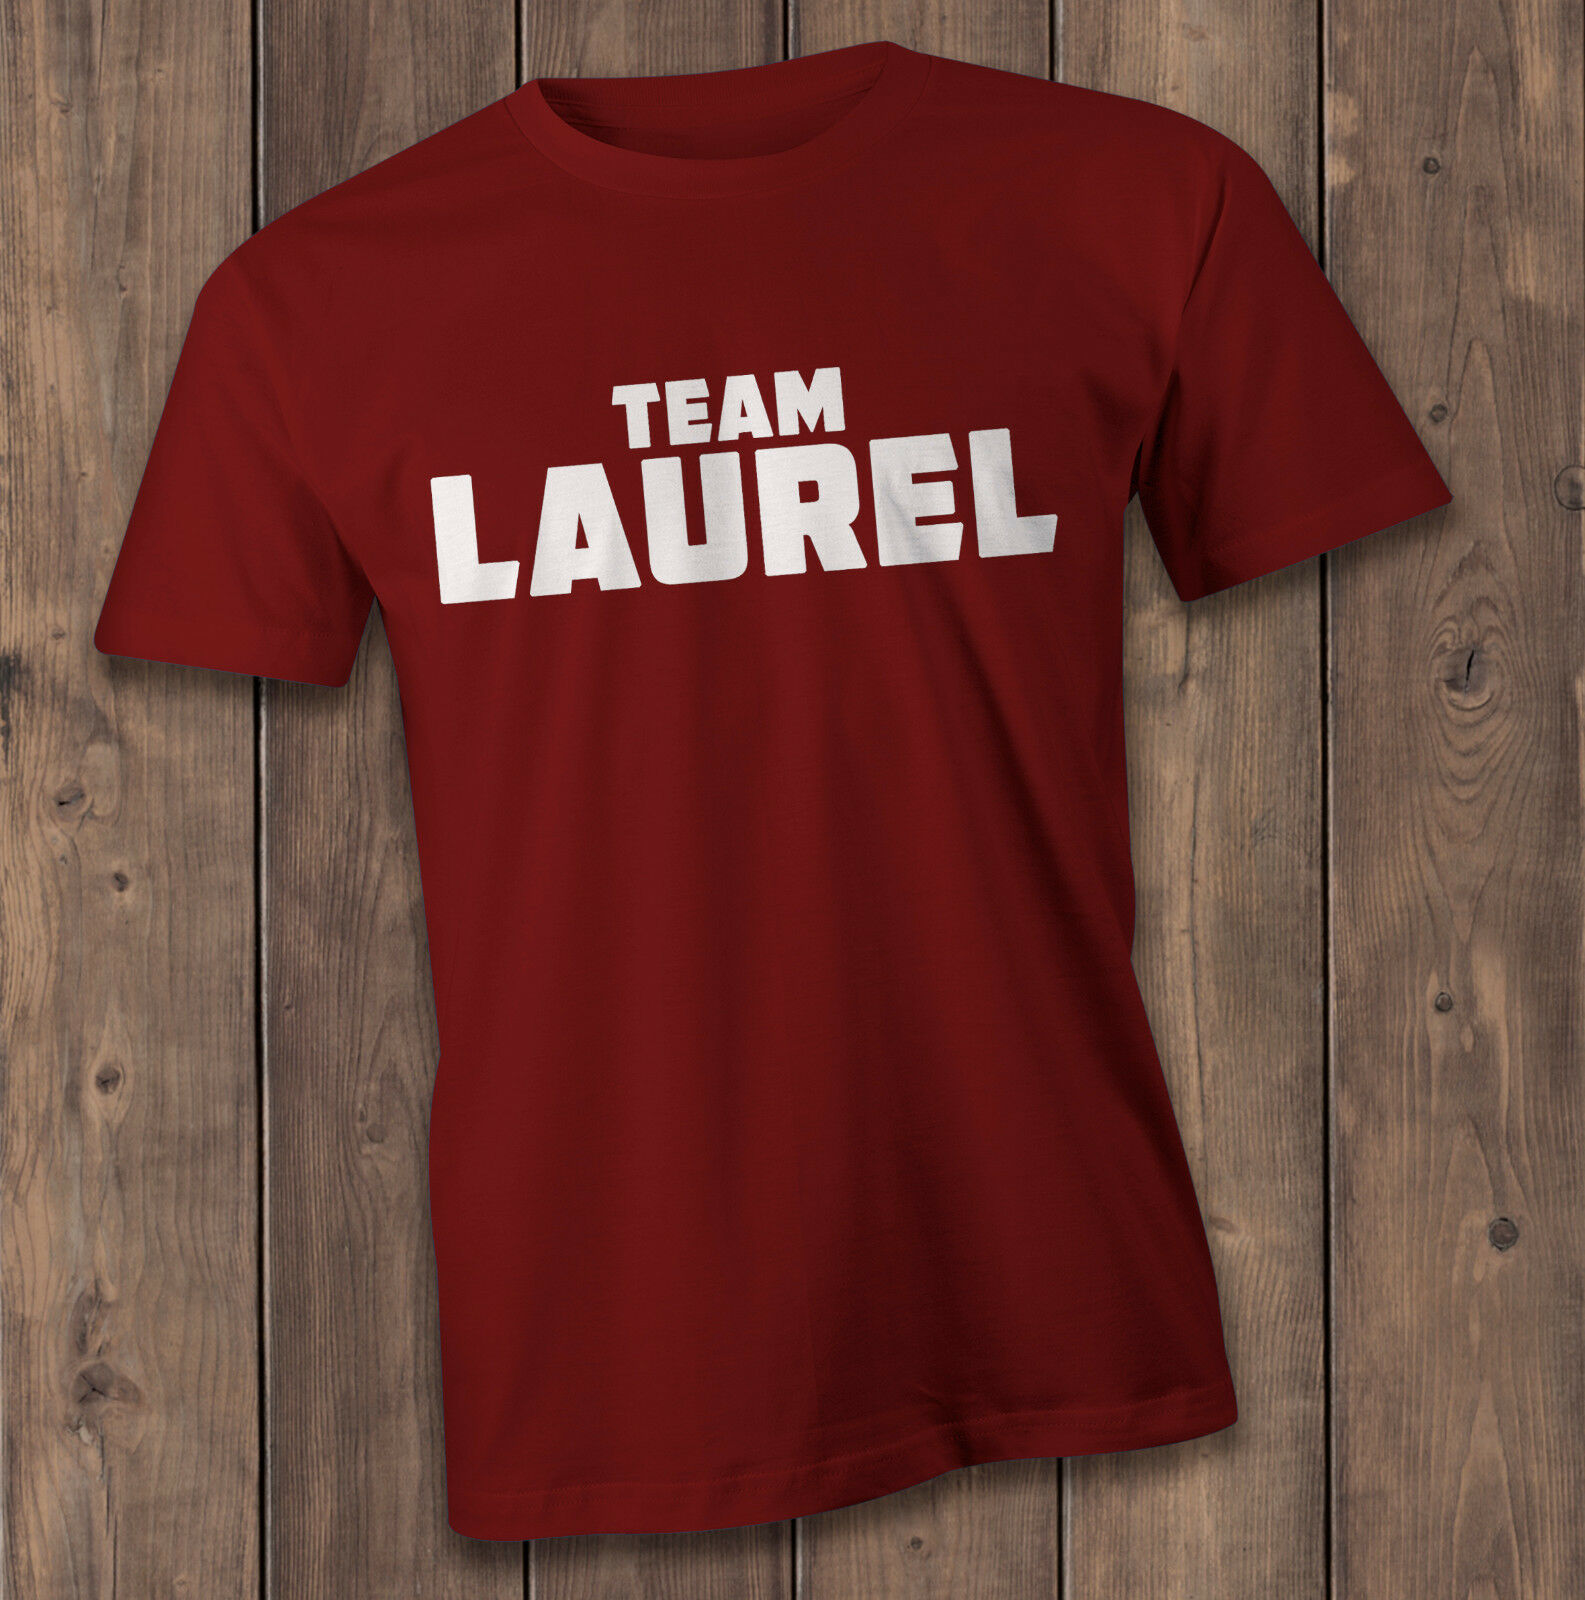 Laurel or Yanny T-Shirt, internet phenomena, viral illusion, Reddit meme image